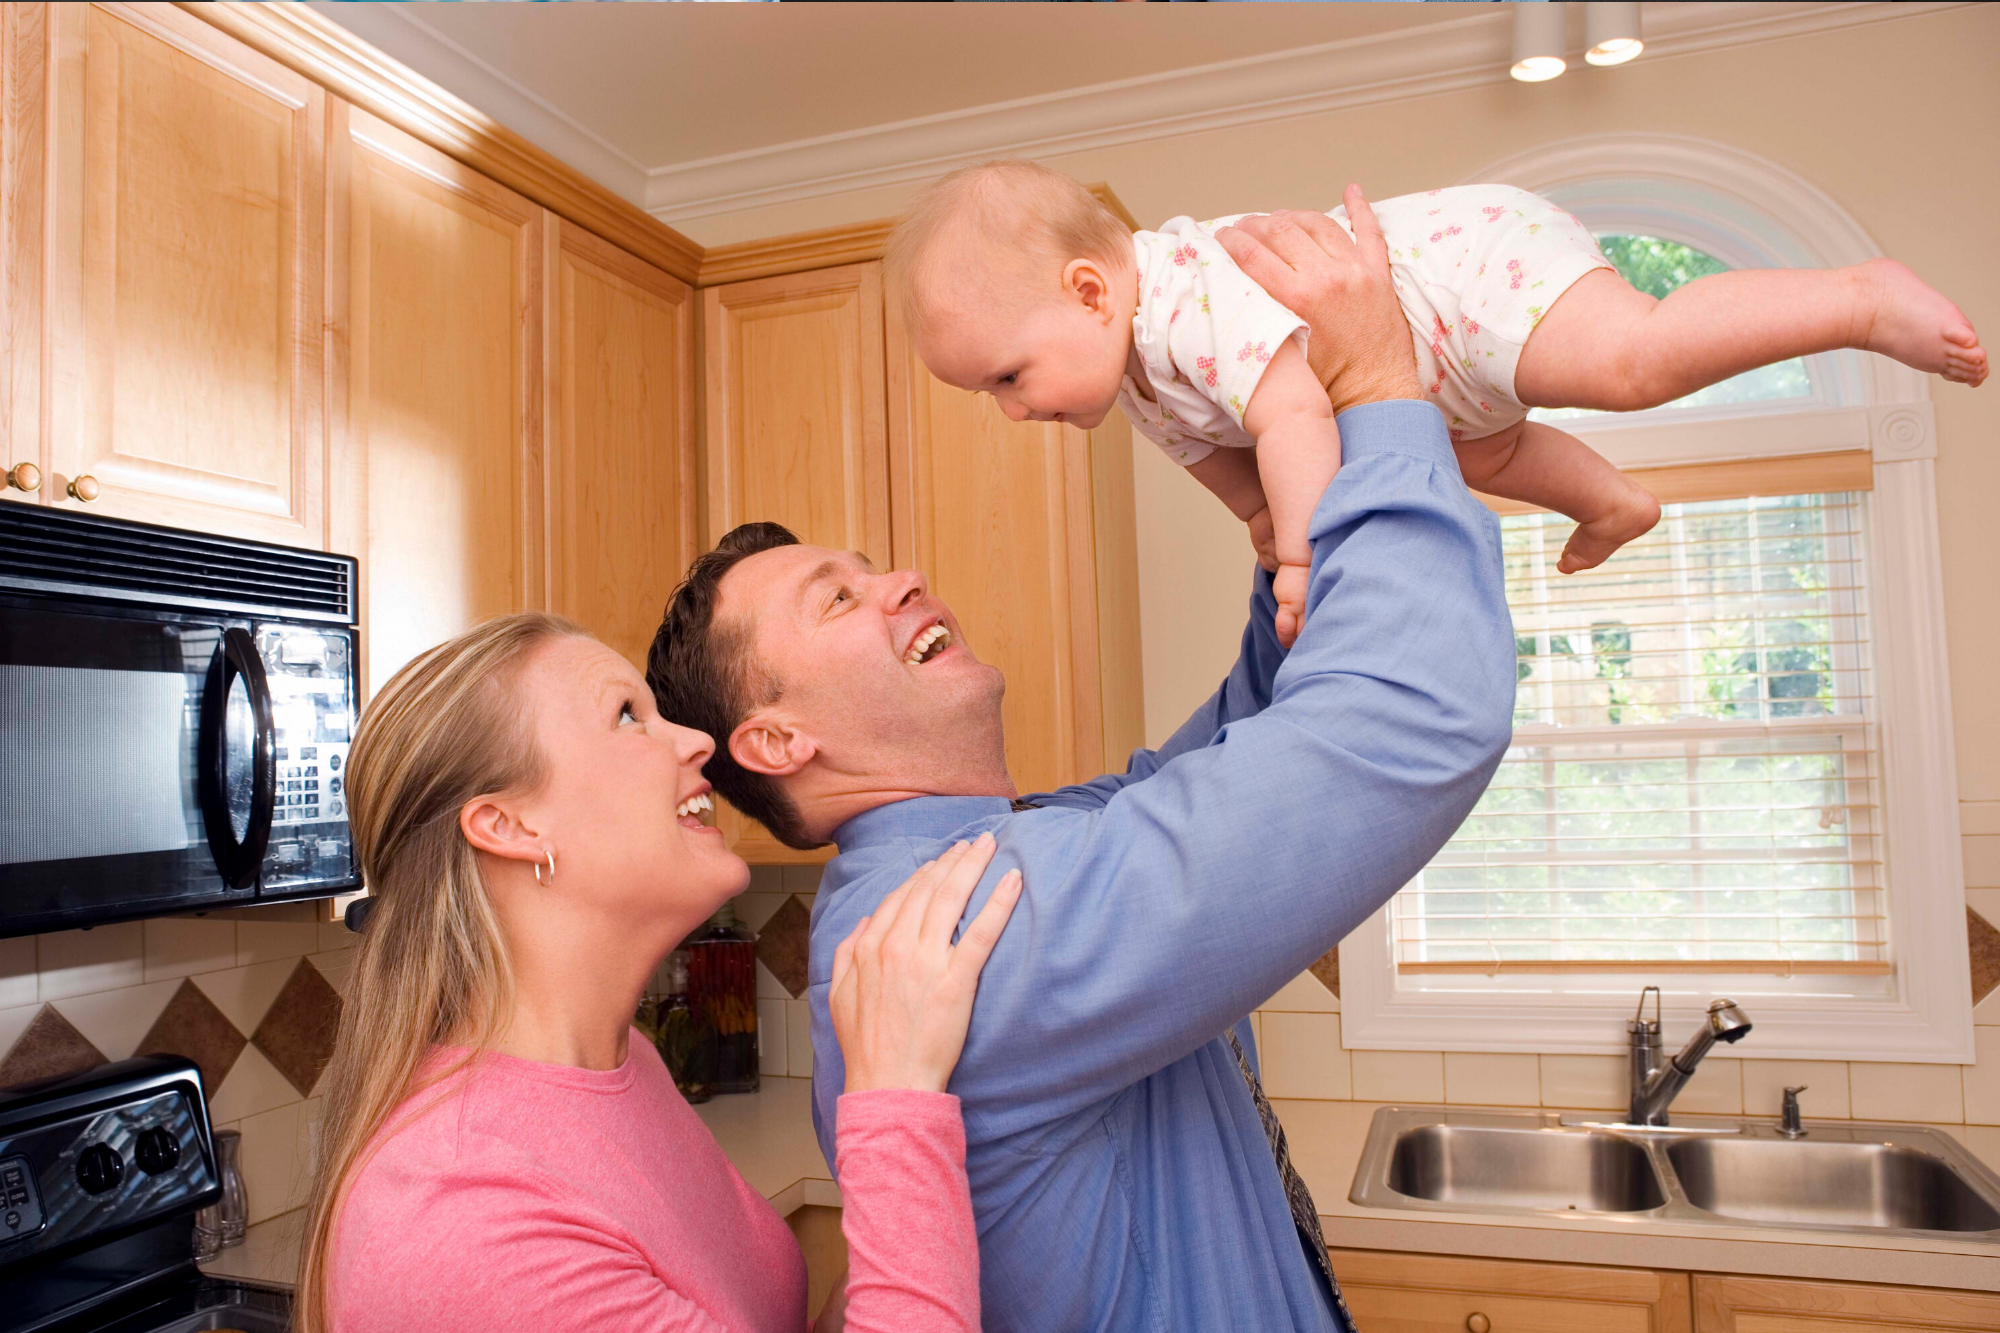 Parents engaging with baby in the kitchen